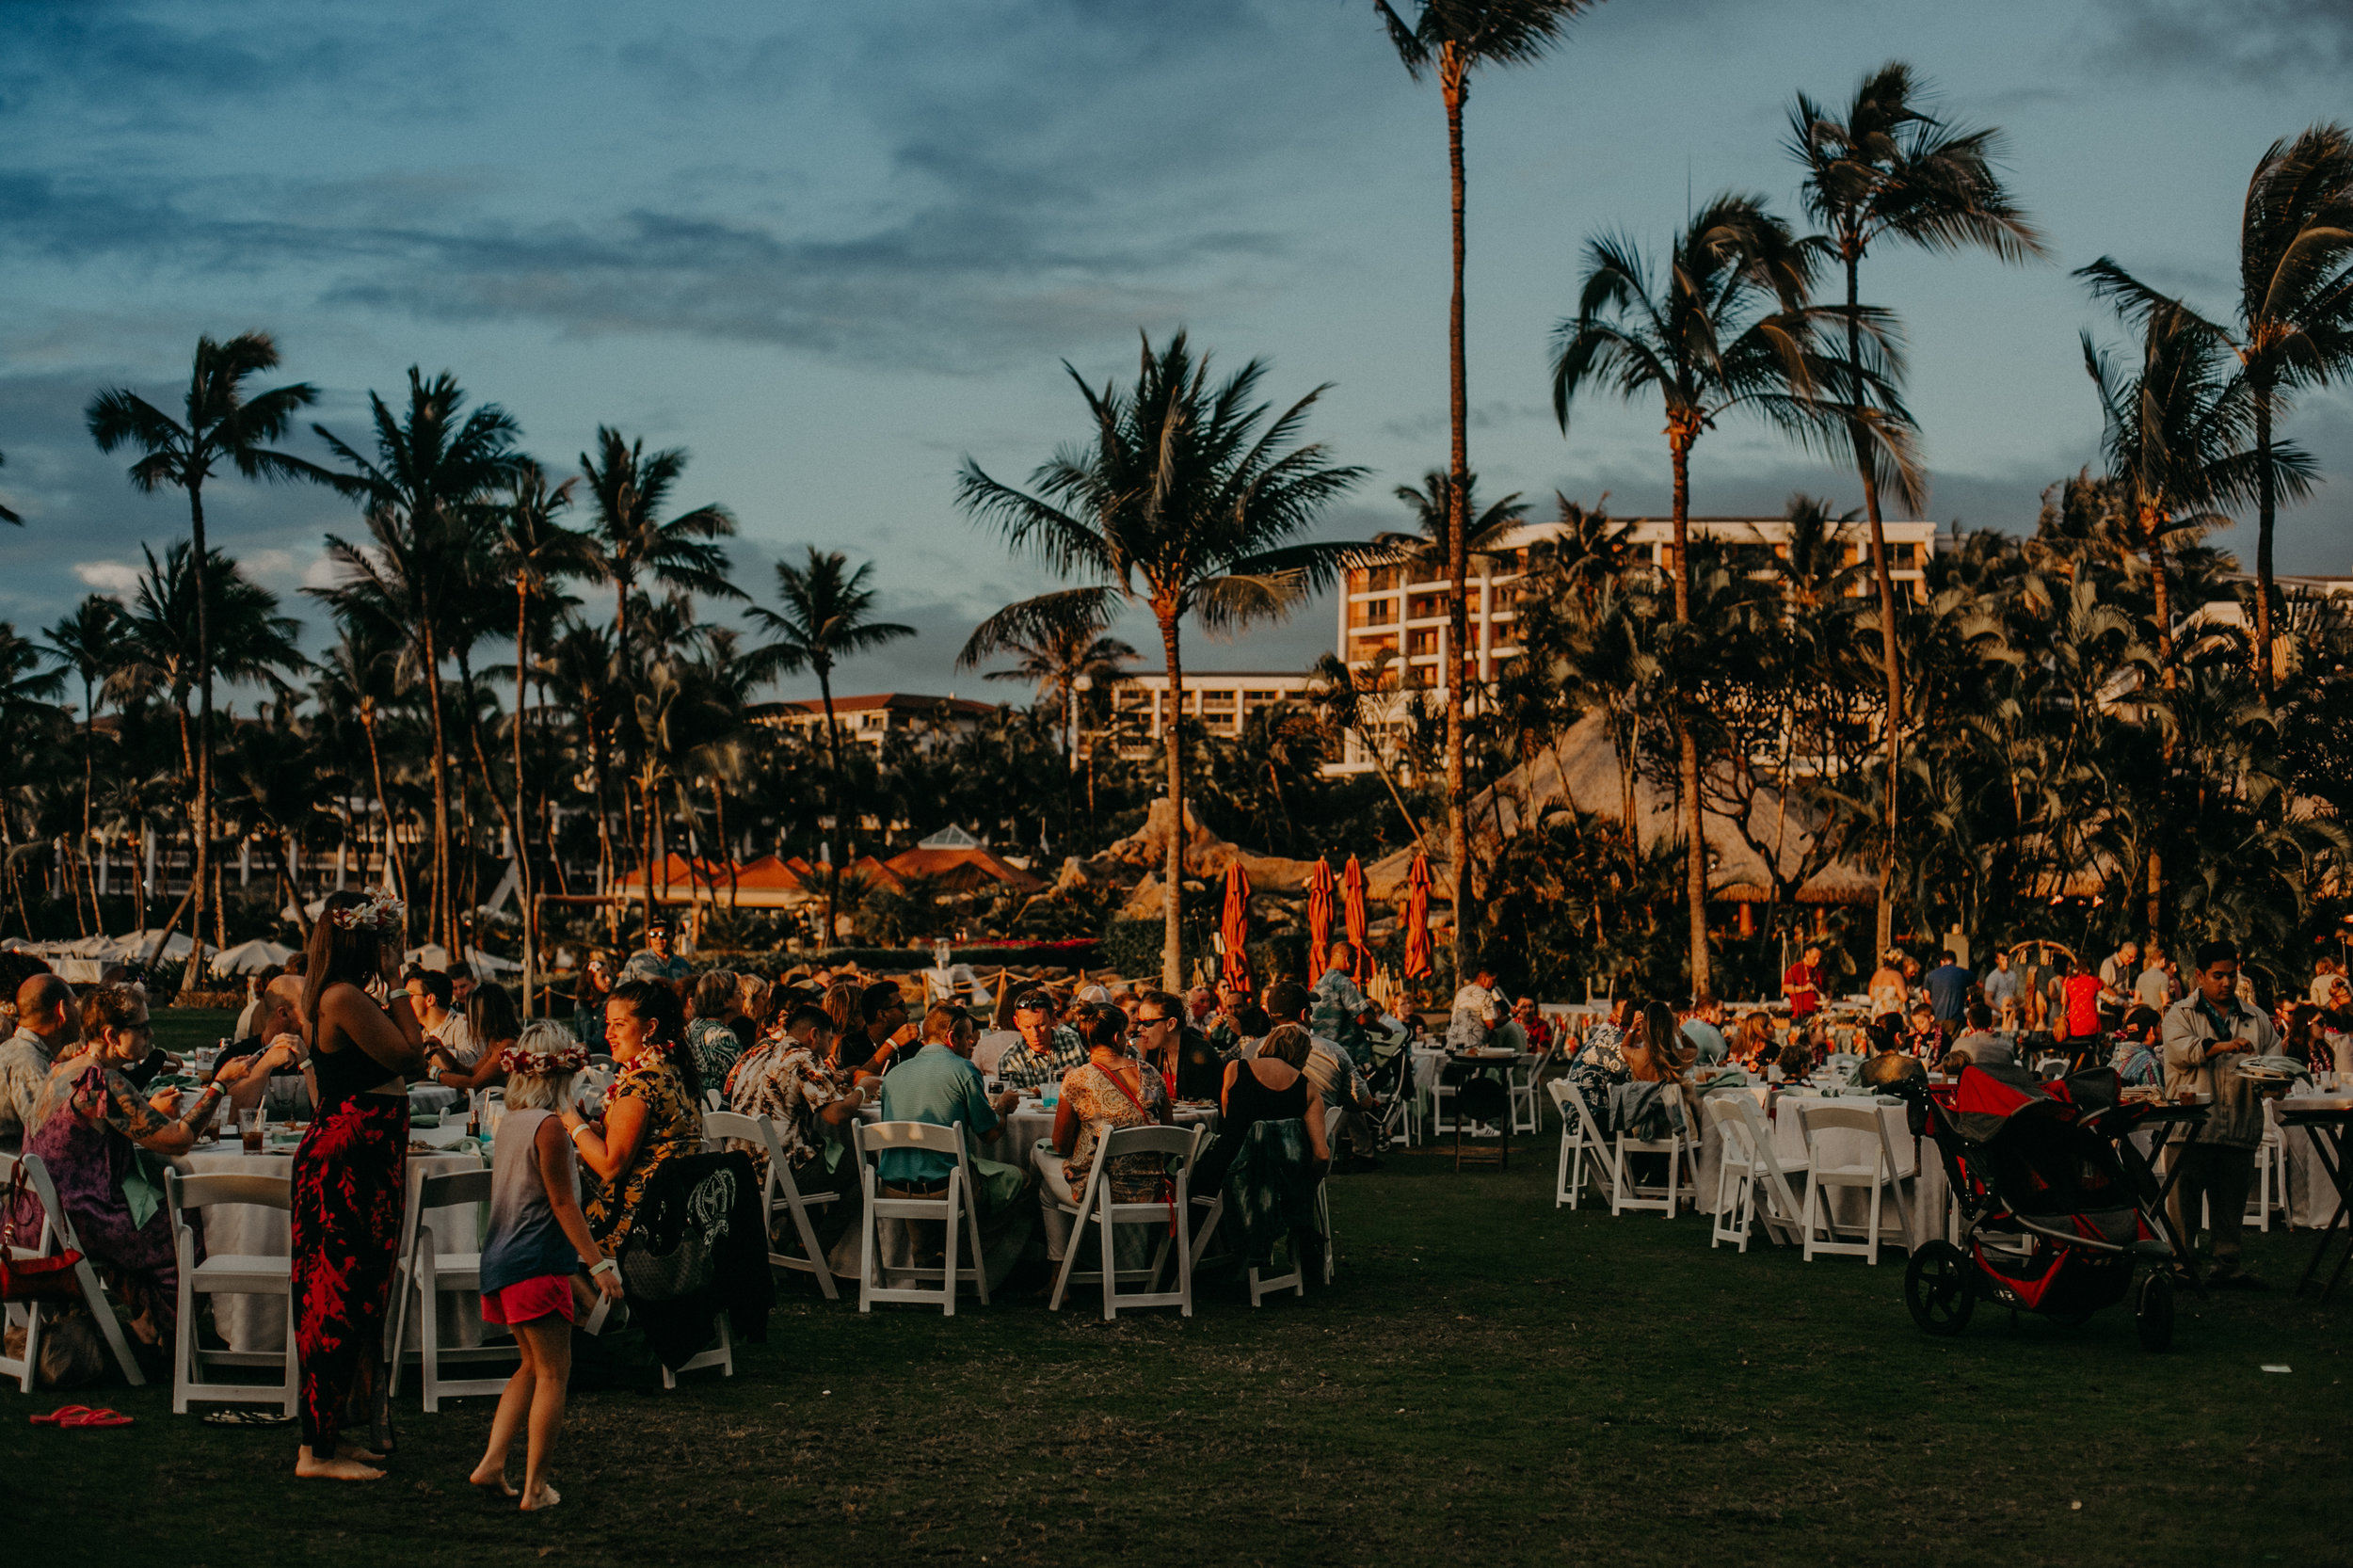 a luau at Grand Wailea resorts on Maui Hawaii at sunset